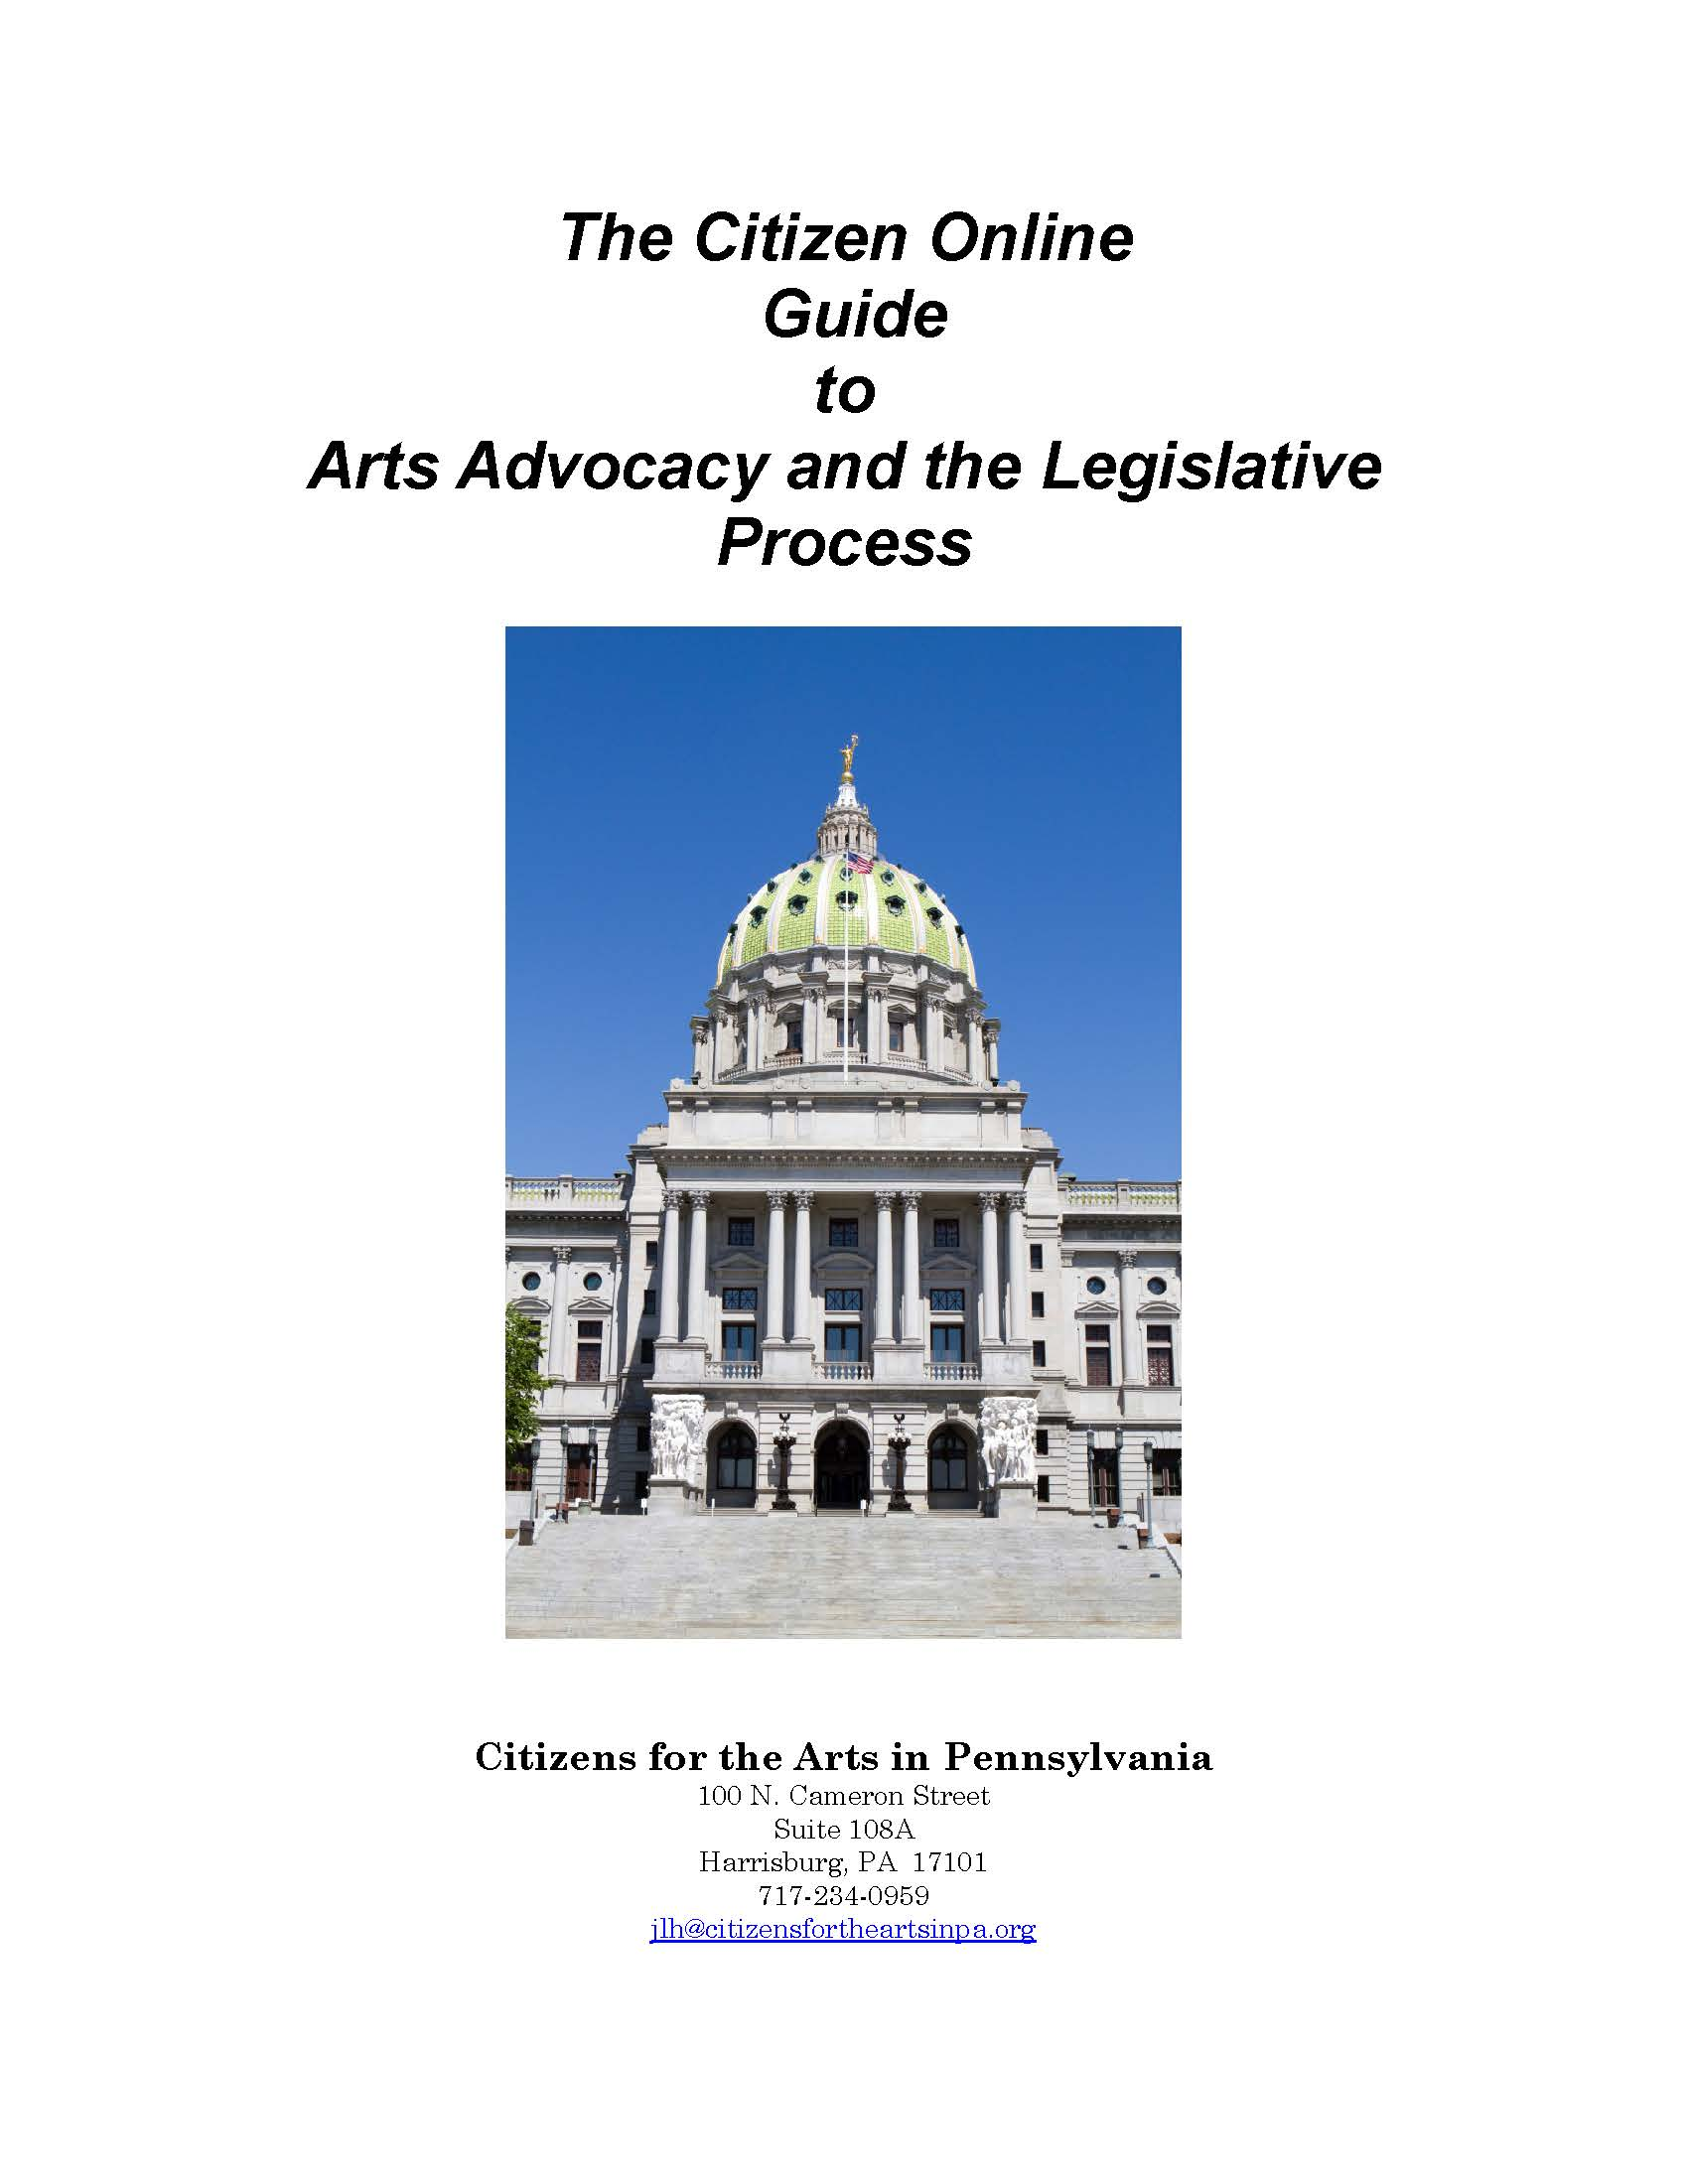 arts advocacy guide cover page.jpg